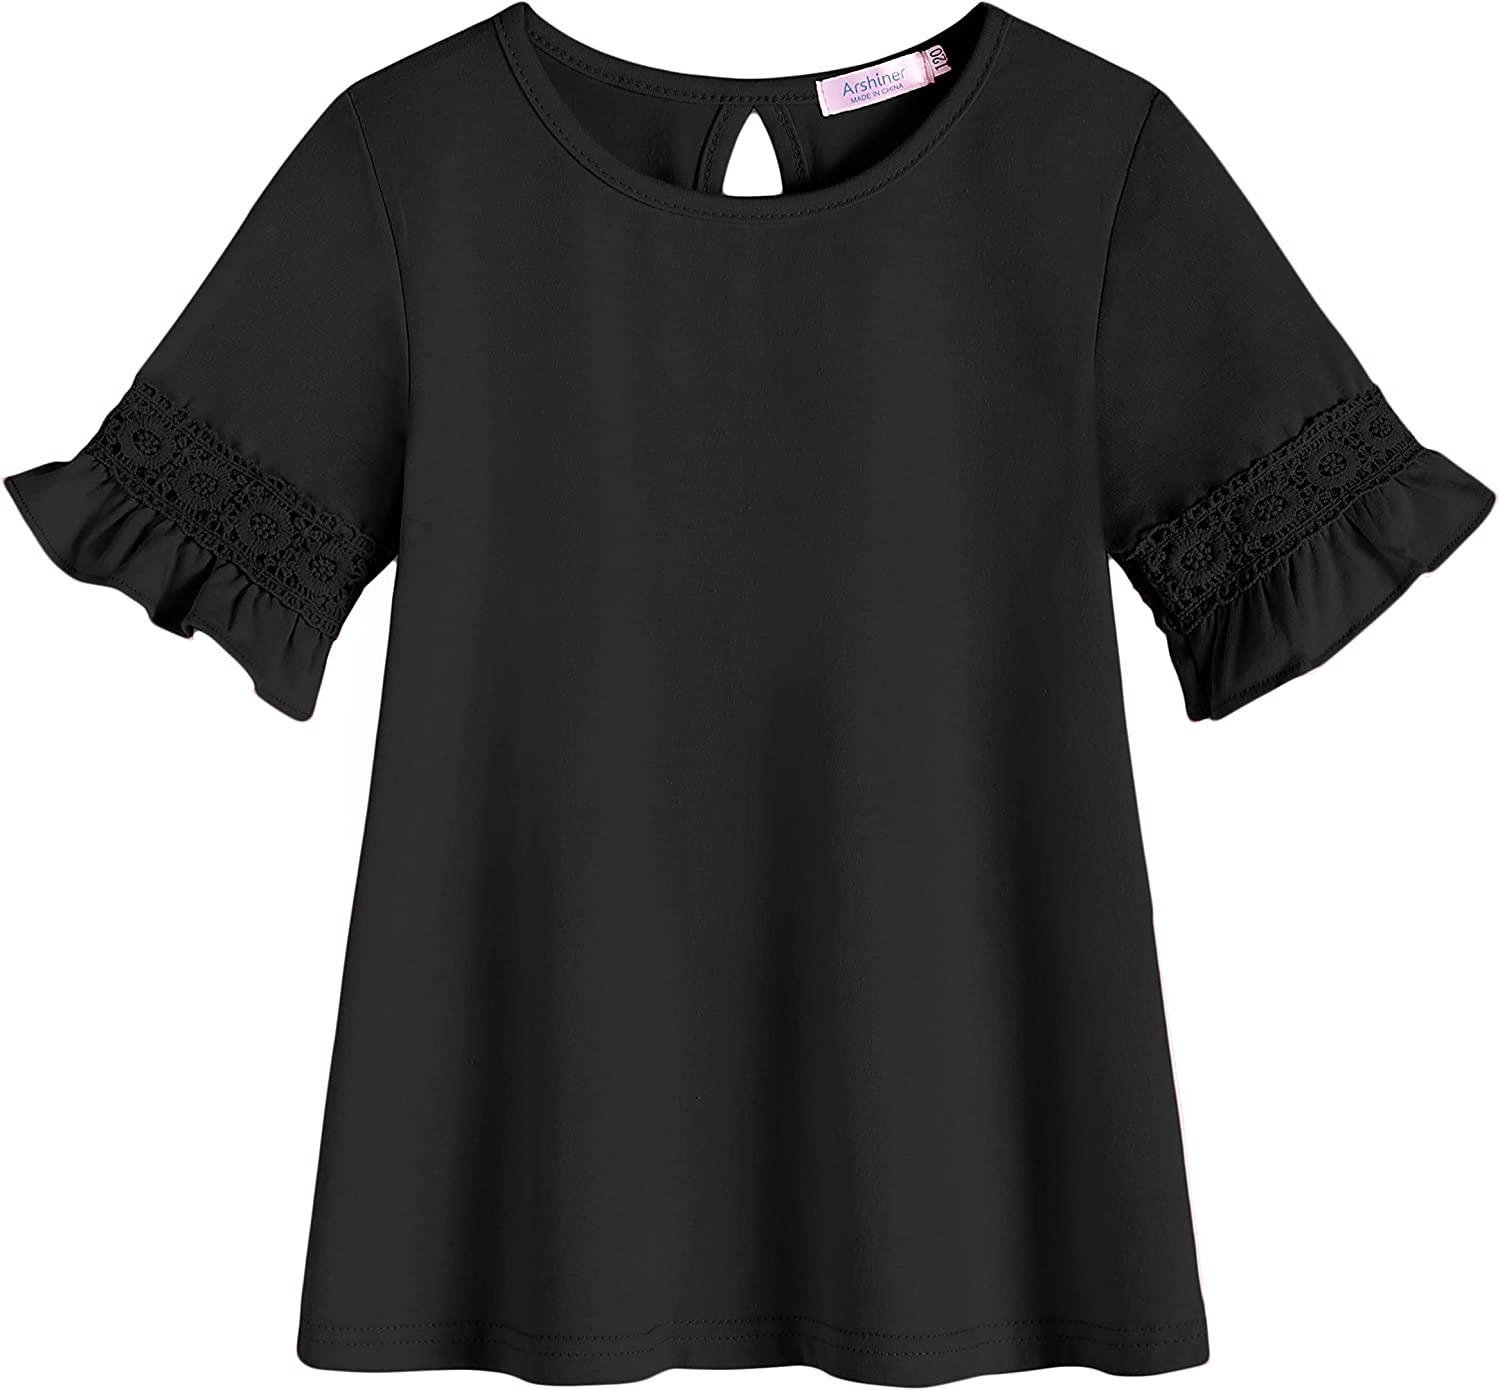 Arshiner Girls T-Shirt Kids Casual Tunic Tops Lace Short Sleeve Loose Soft Blouse